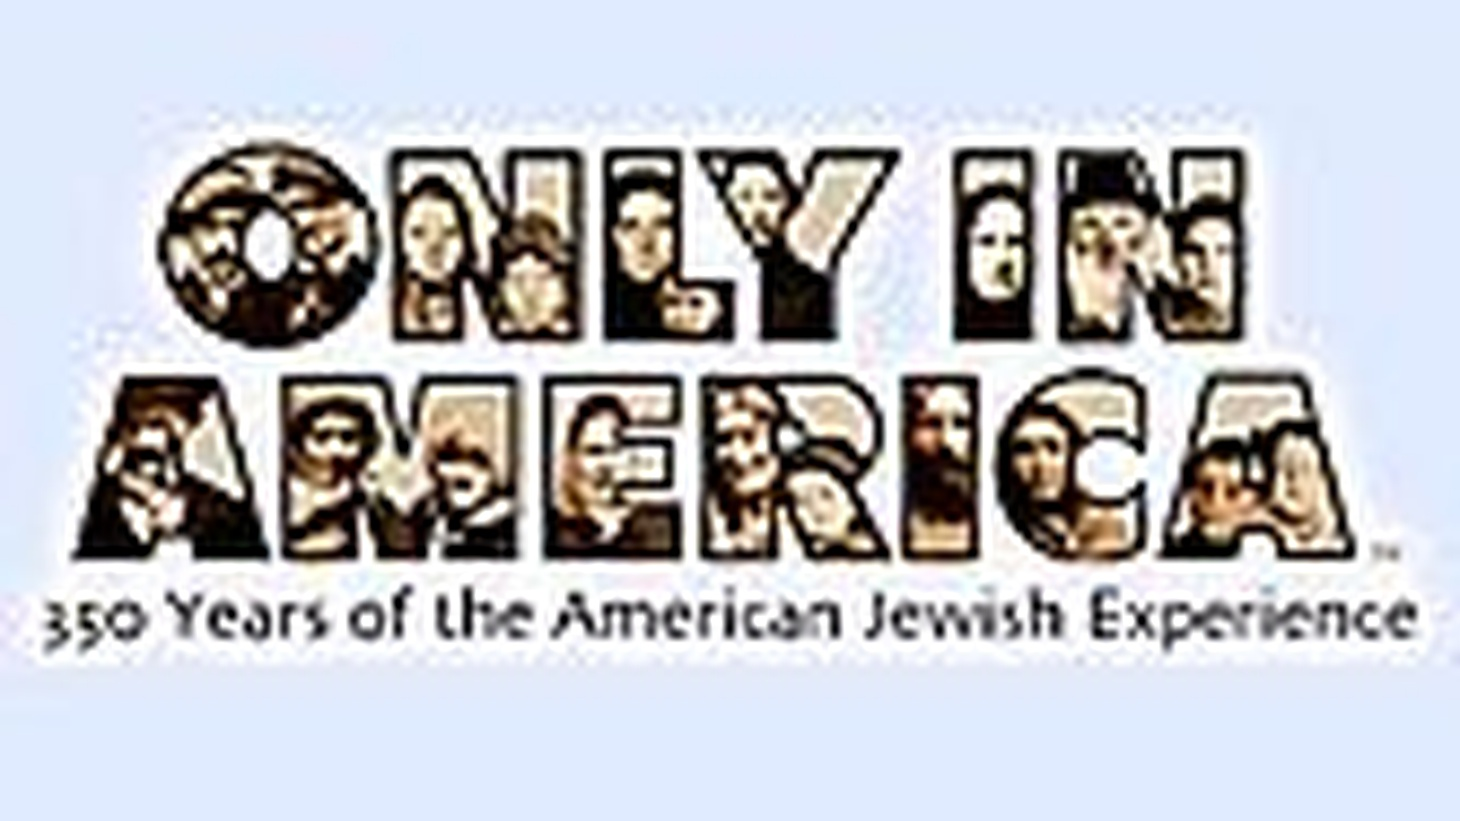 America provided refuge from ancient European prejudice and persecution. The First Jews tells the little-known early history of Jews in Colonial America, from New Amsterdam to Charleston, South Carolina. Thus began a 350-year struggle for survival and acceptance. The story concludes with the American Revolution, the adoption of the Constitution and the Bill of Rights, and their crucial role in the success in the new country for American Jews and all who followed.  Part 1 of 5, the series runs December 3-7 from 2-3pm.